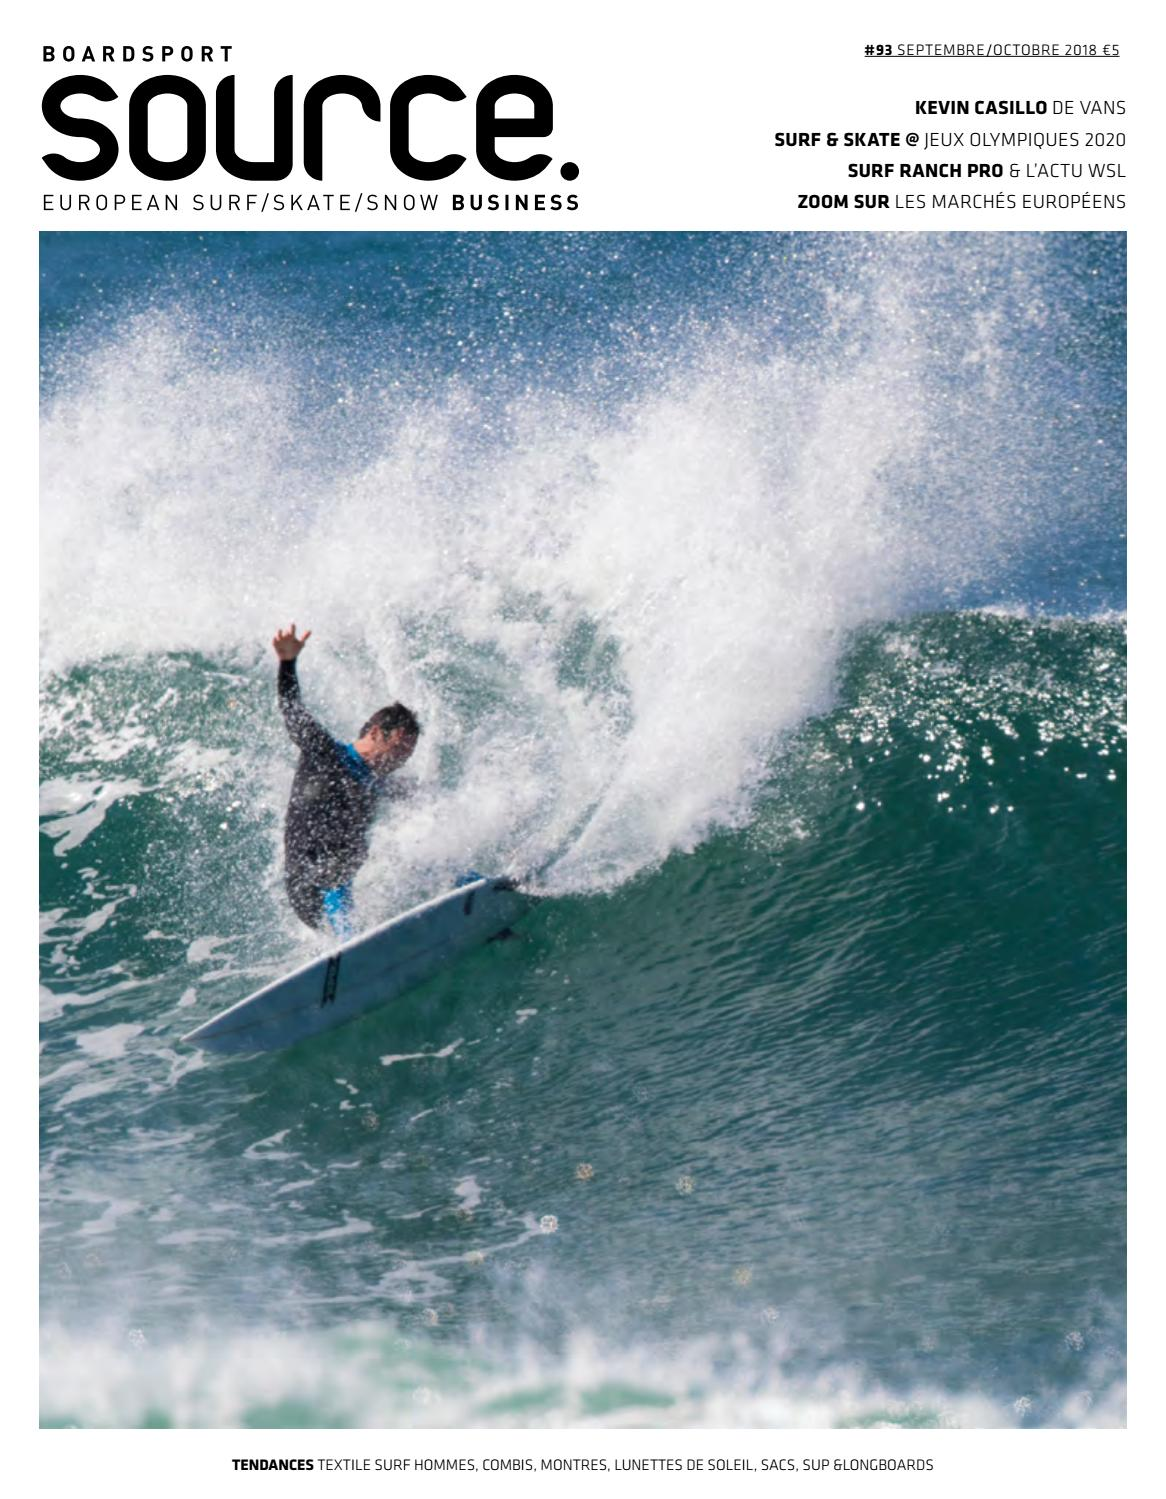 BoardSport Source, Issue 93, September October 2018 French